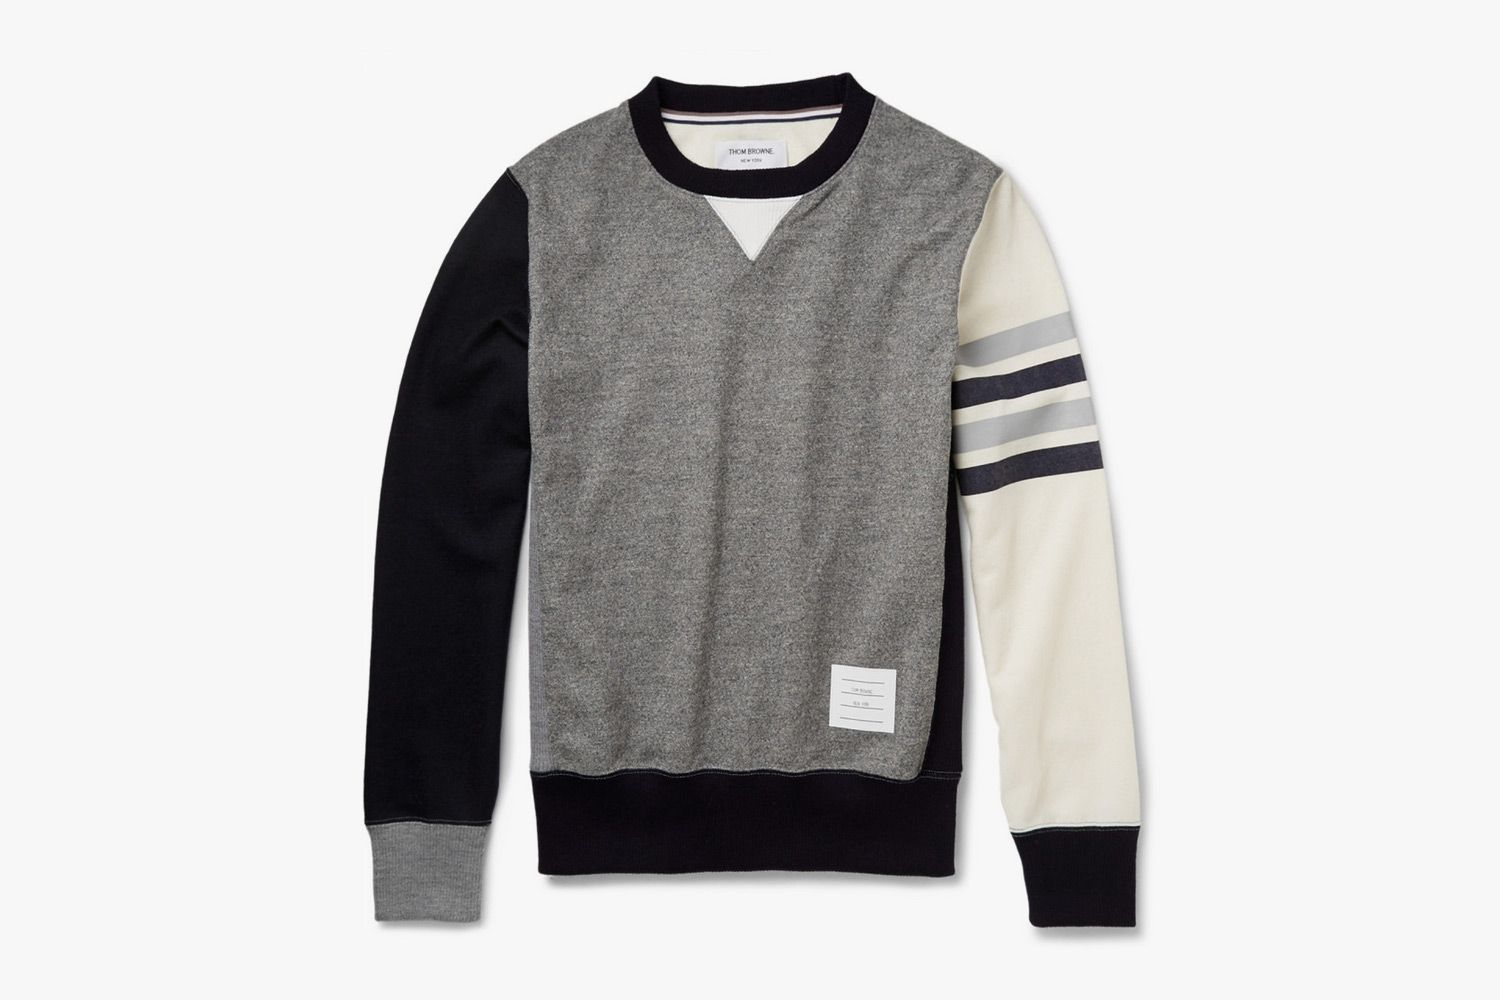 590204b026c Thom Browne for MR PORTER Exclusives 2014